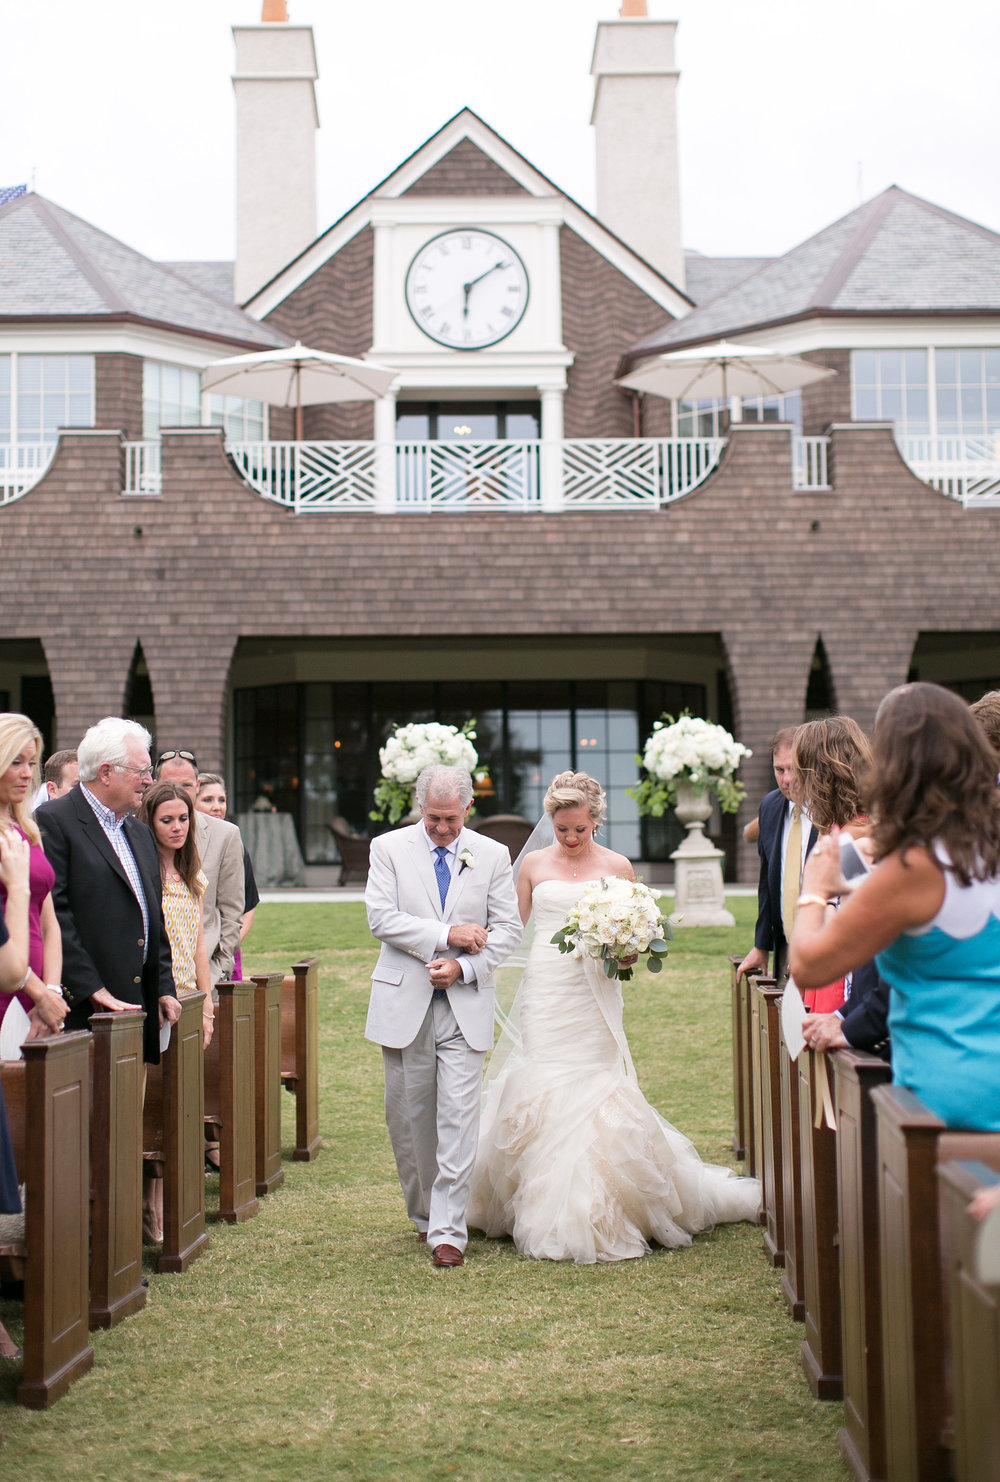 Ceremony Details - Kiawah Island, South Carolina - Fall Wedding - Julian Leaver Events